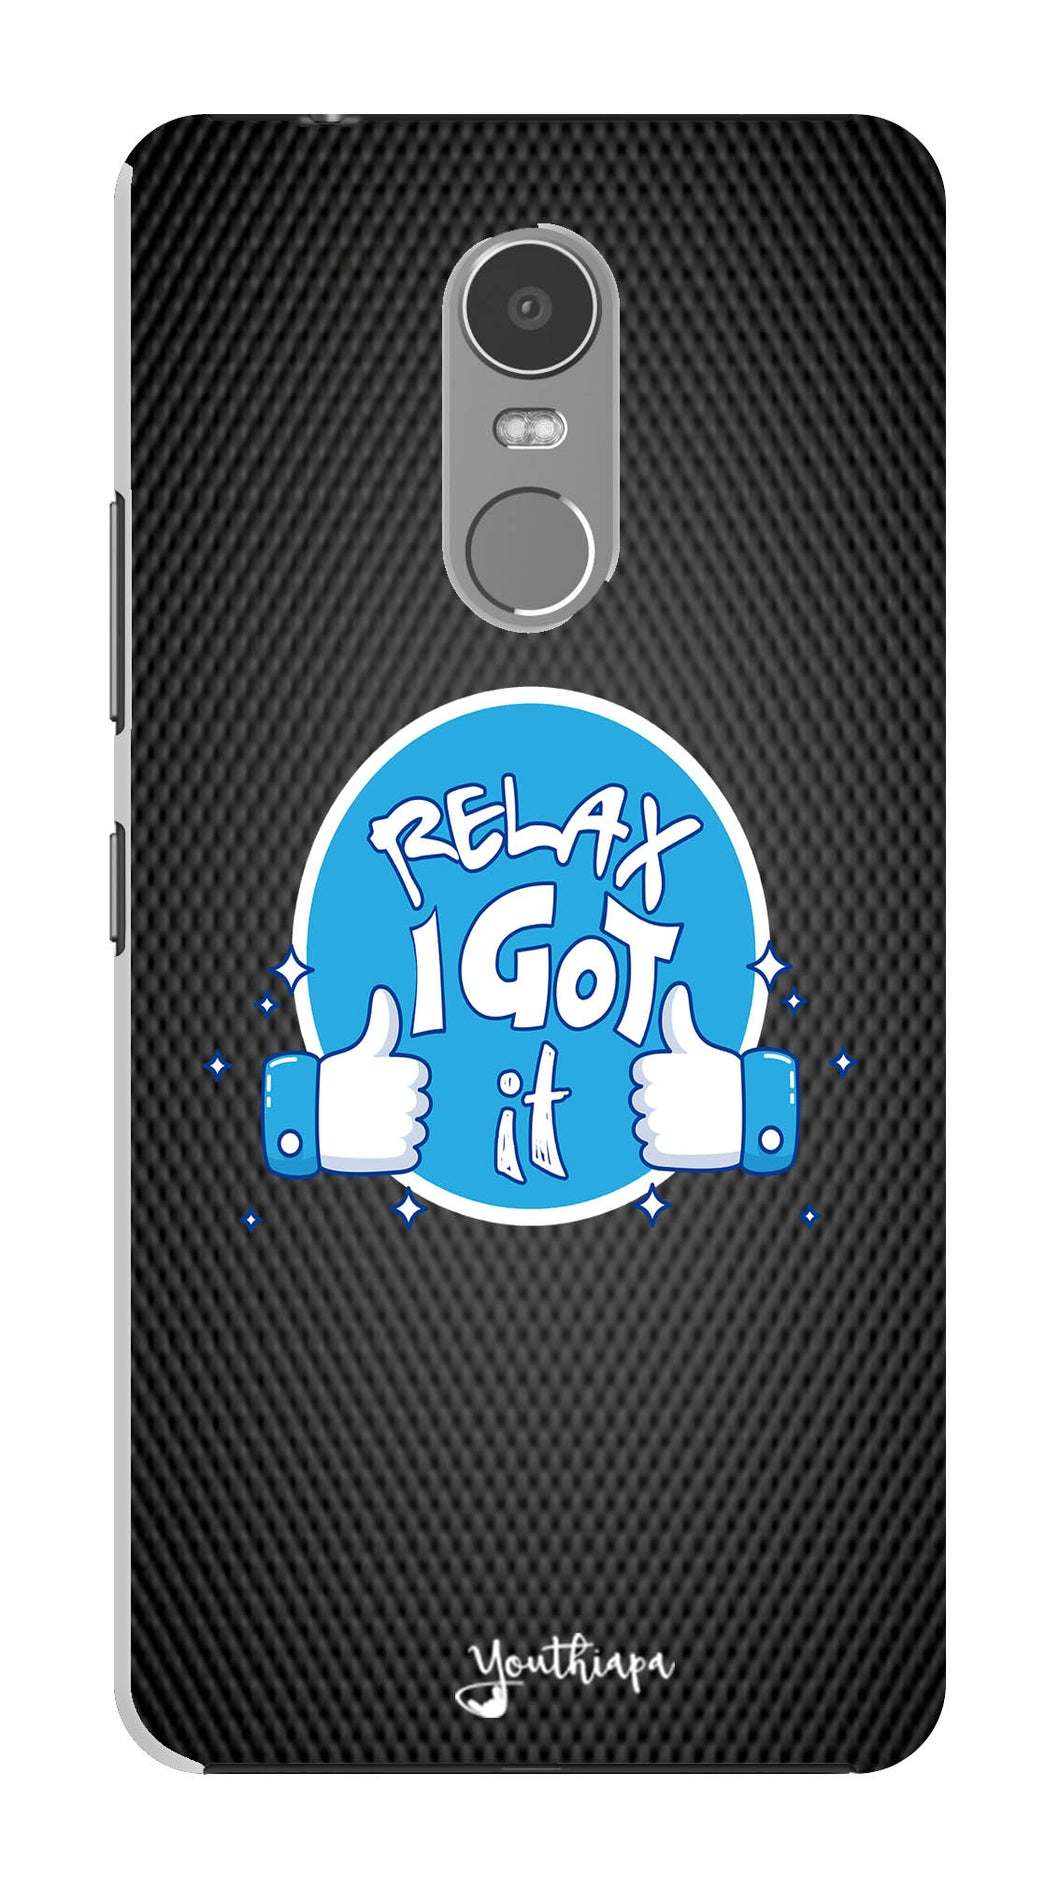 Relax Edition for Lenovo K6 Note